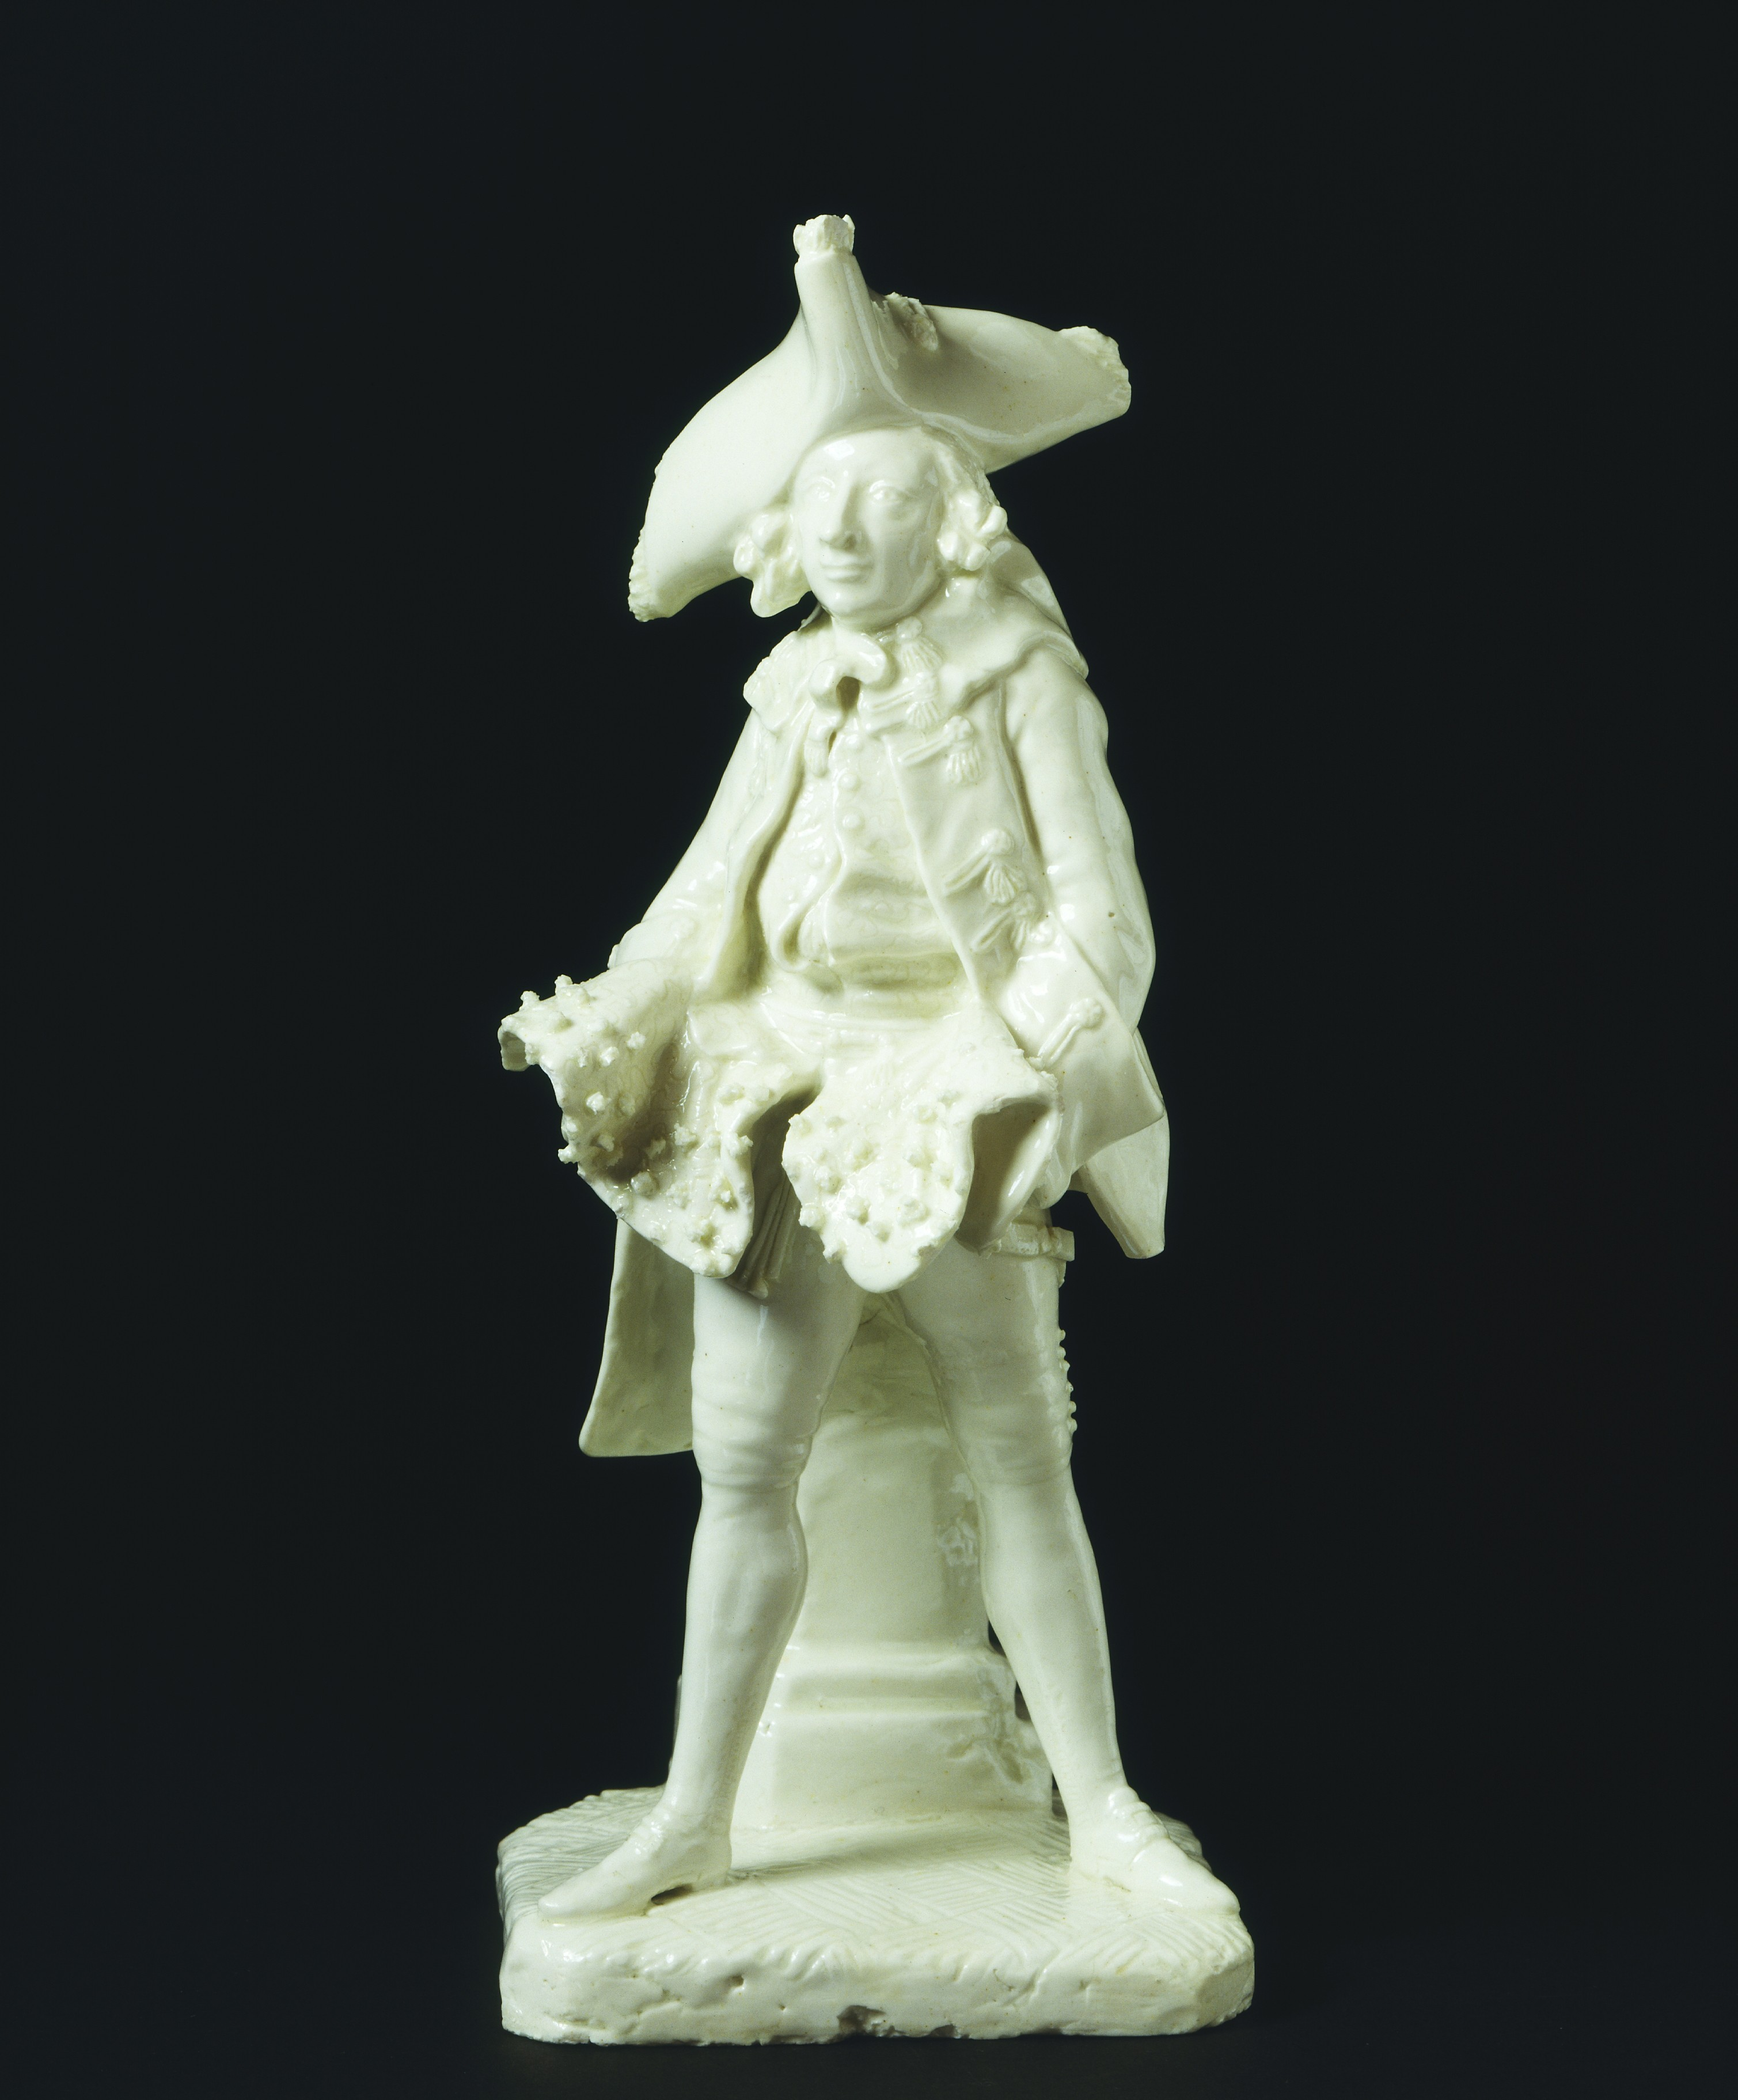 414:135-1885 – Porcelain figure of Henry Woodward as 'The Fine Gentleman'. On display in gallery 58.